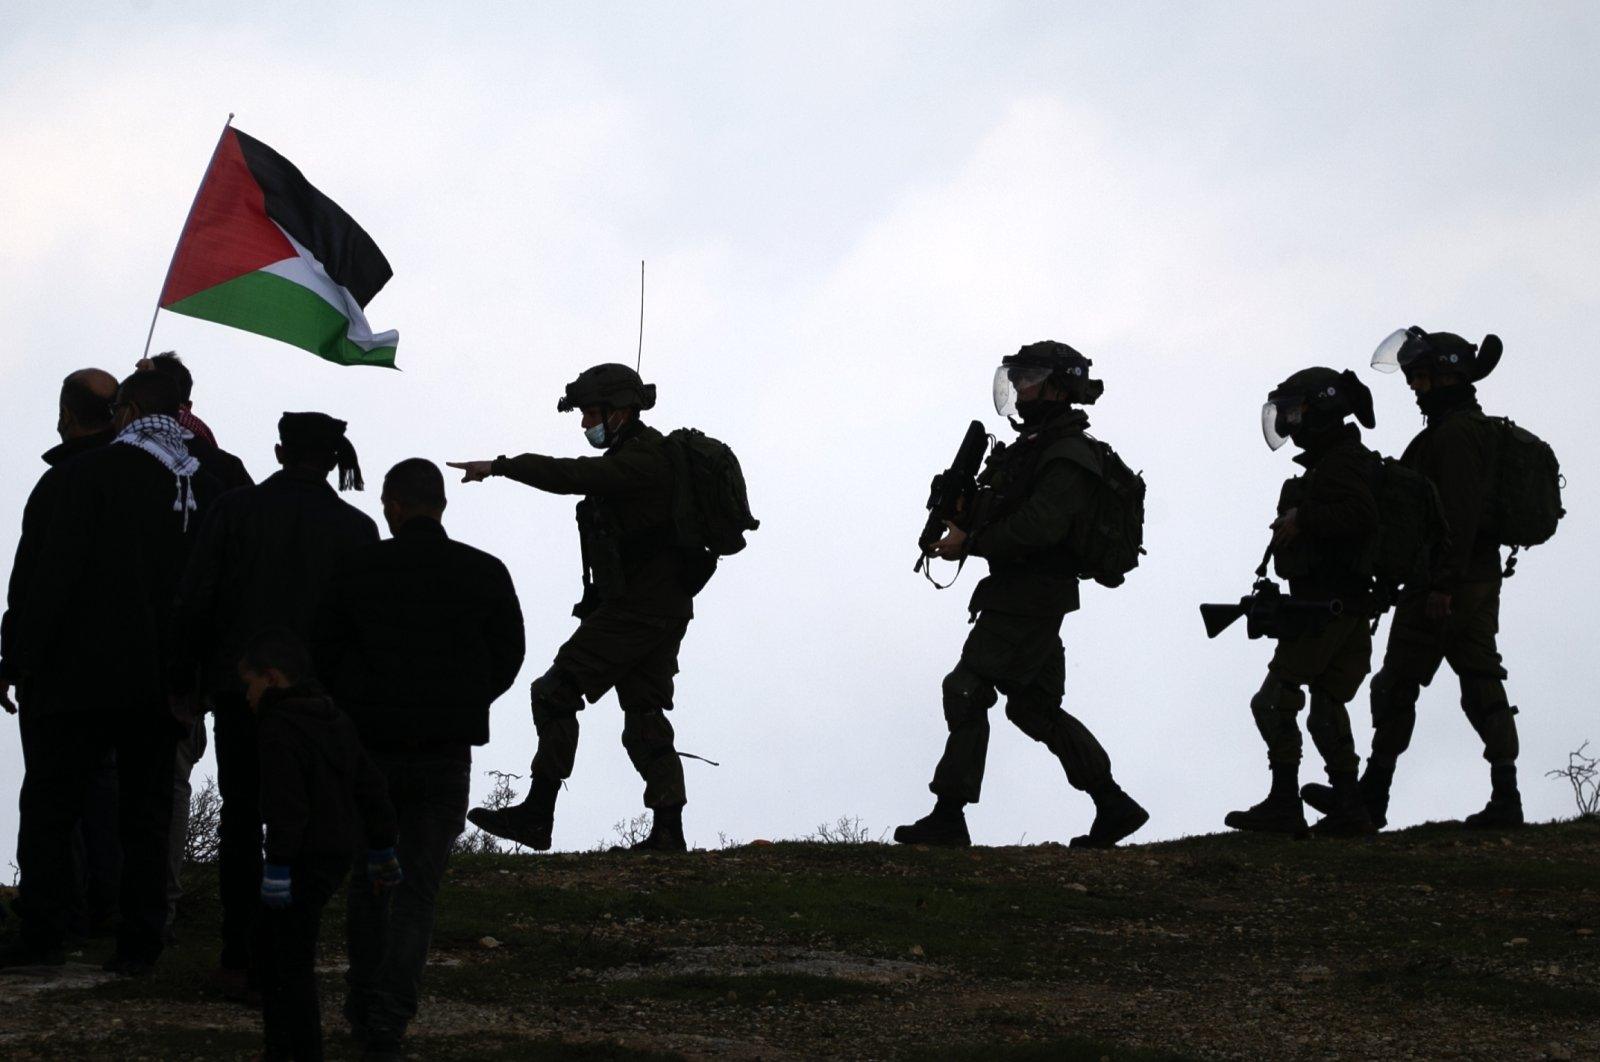 Palestinian protesters face Israeli security forces following a demonstration against the expansion of settlements near the village of Beit Dajan, east of Nablus, in the occupied West Bank, Feb. 5, 2021. (AFP Photo)